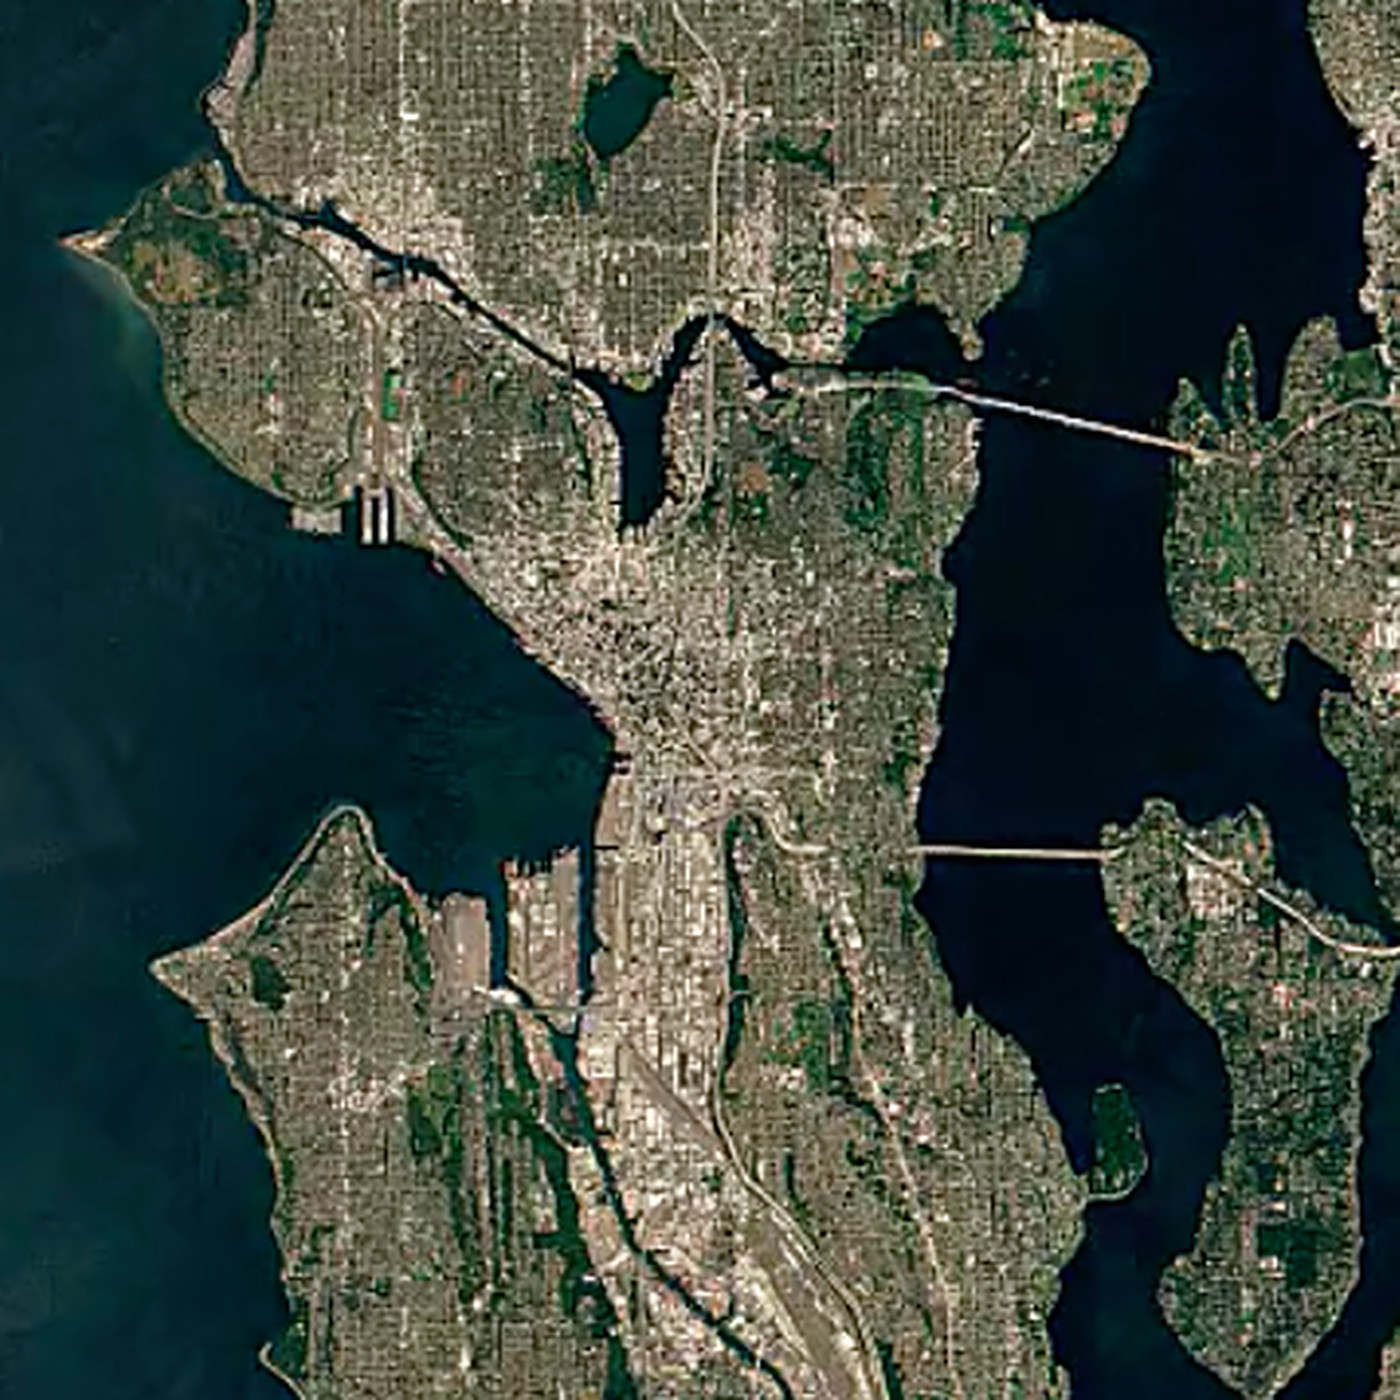 Watch Seattle regional development expand from 1984 to 2016 ...